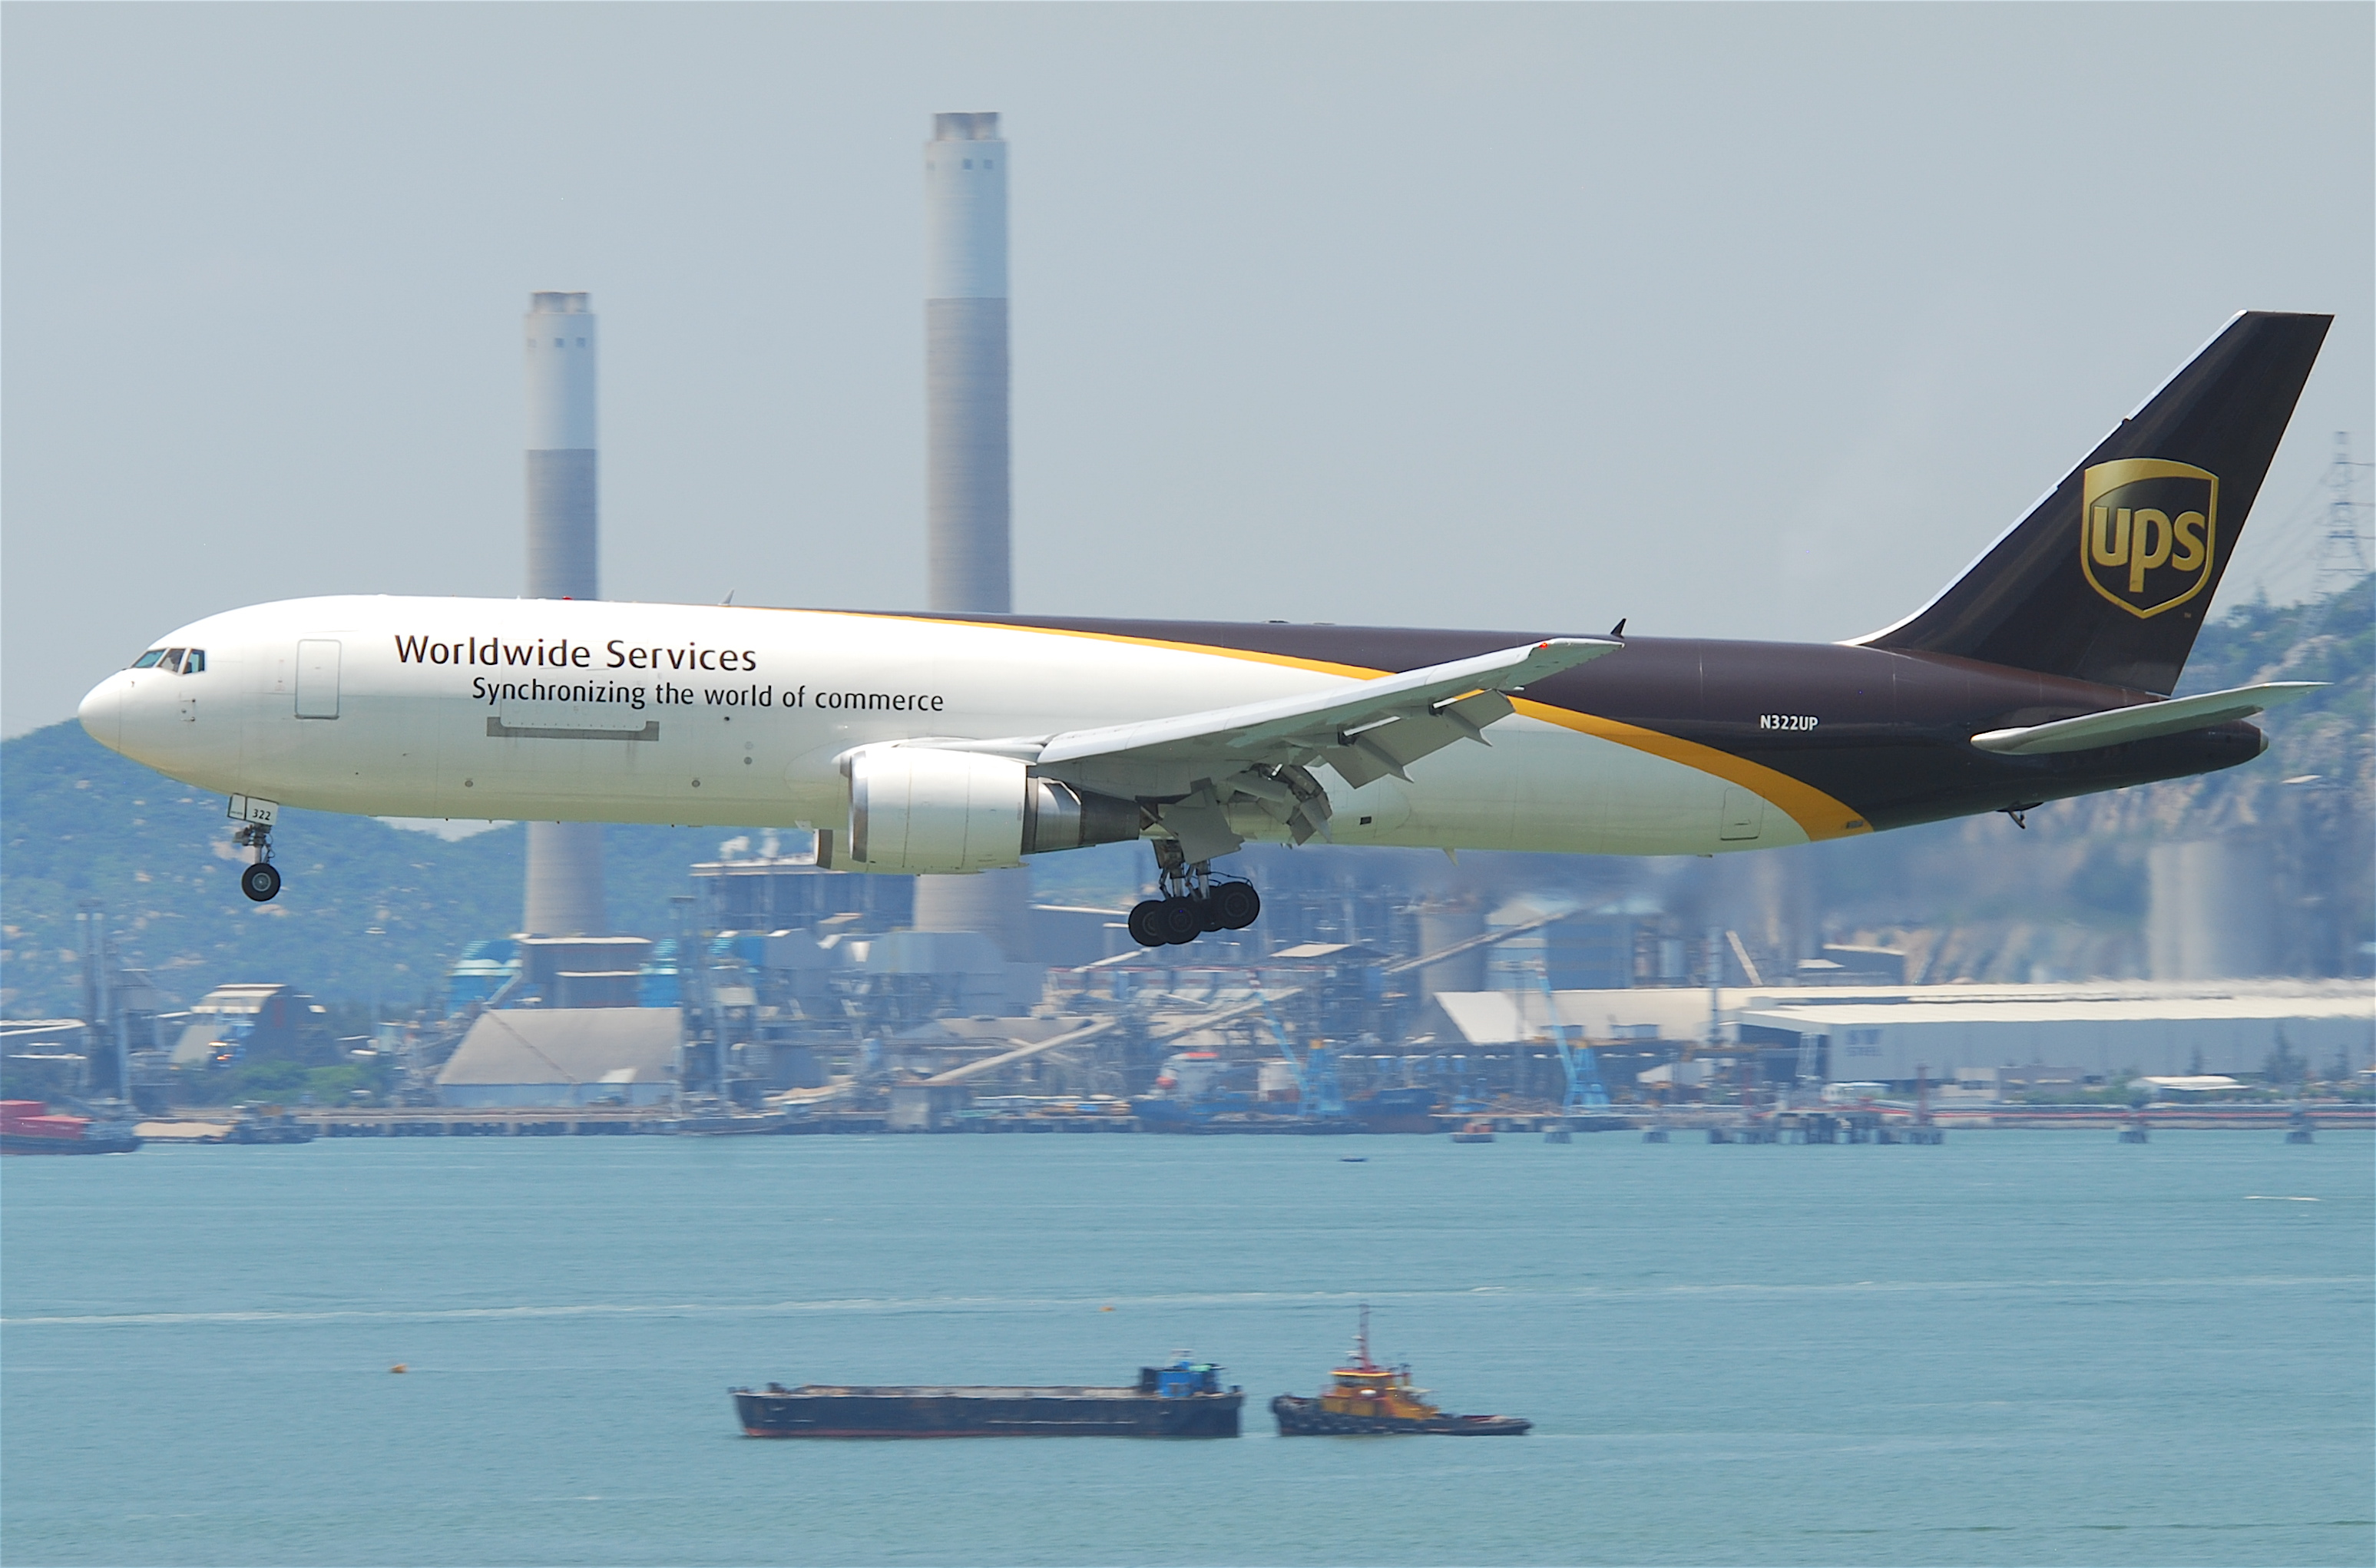 UPS Airplane eEuroparts.com